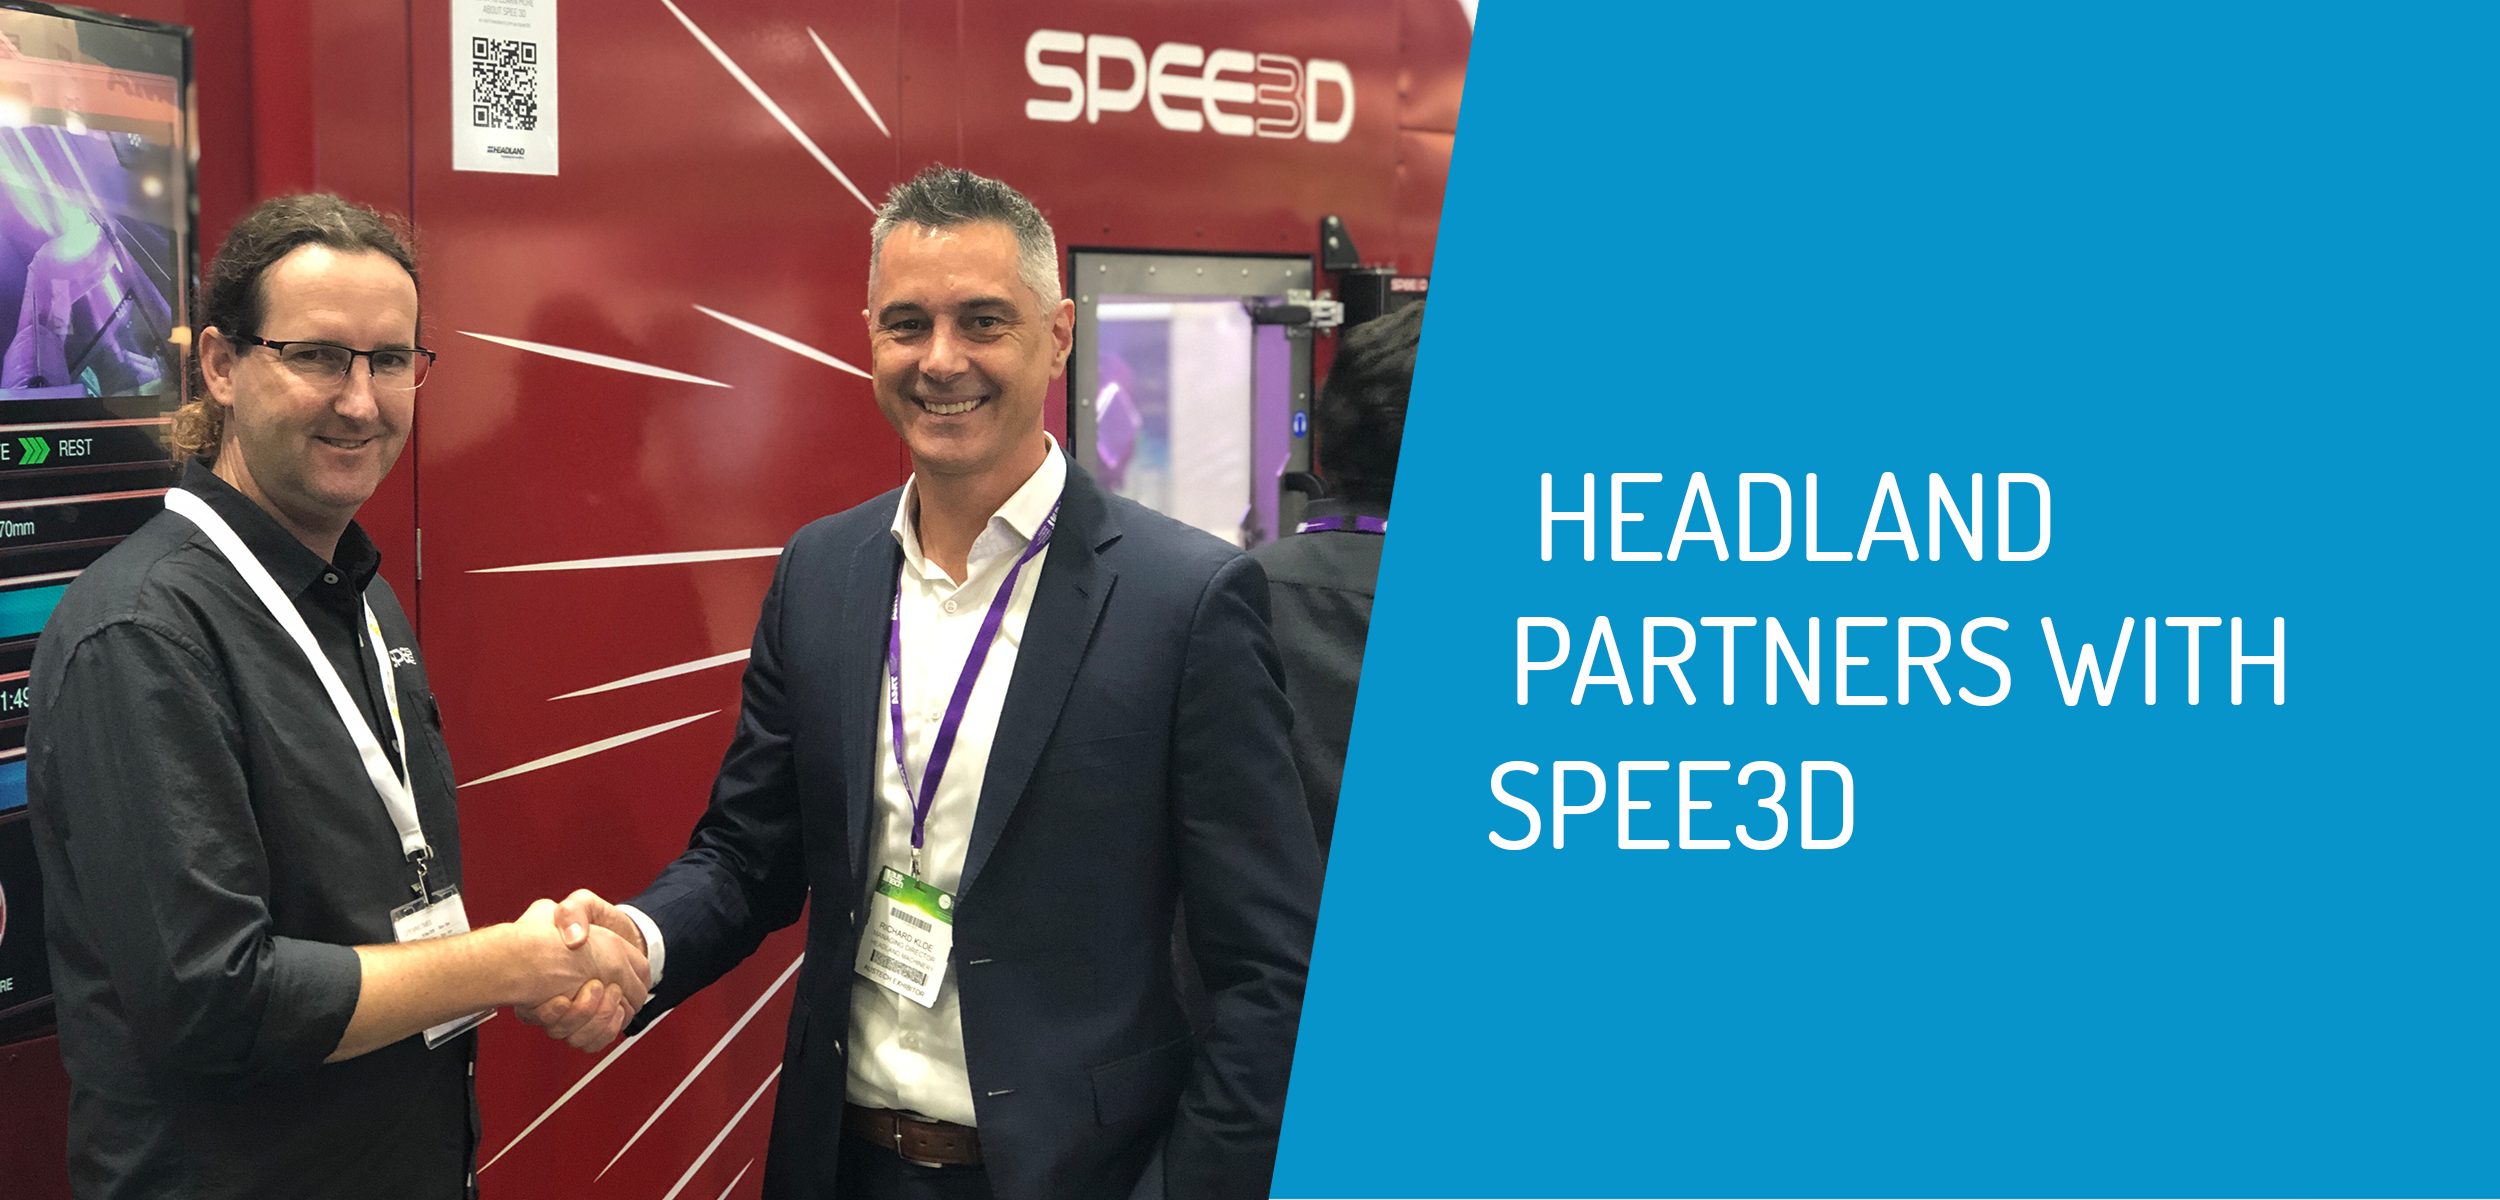 Headland Partners with Spee3d